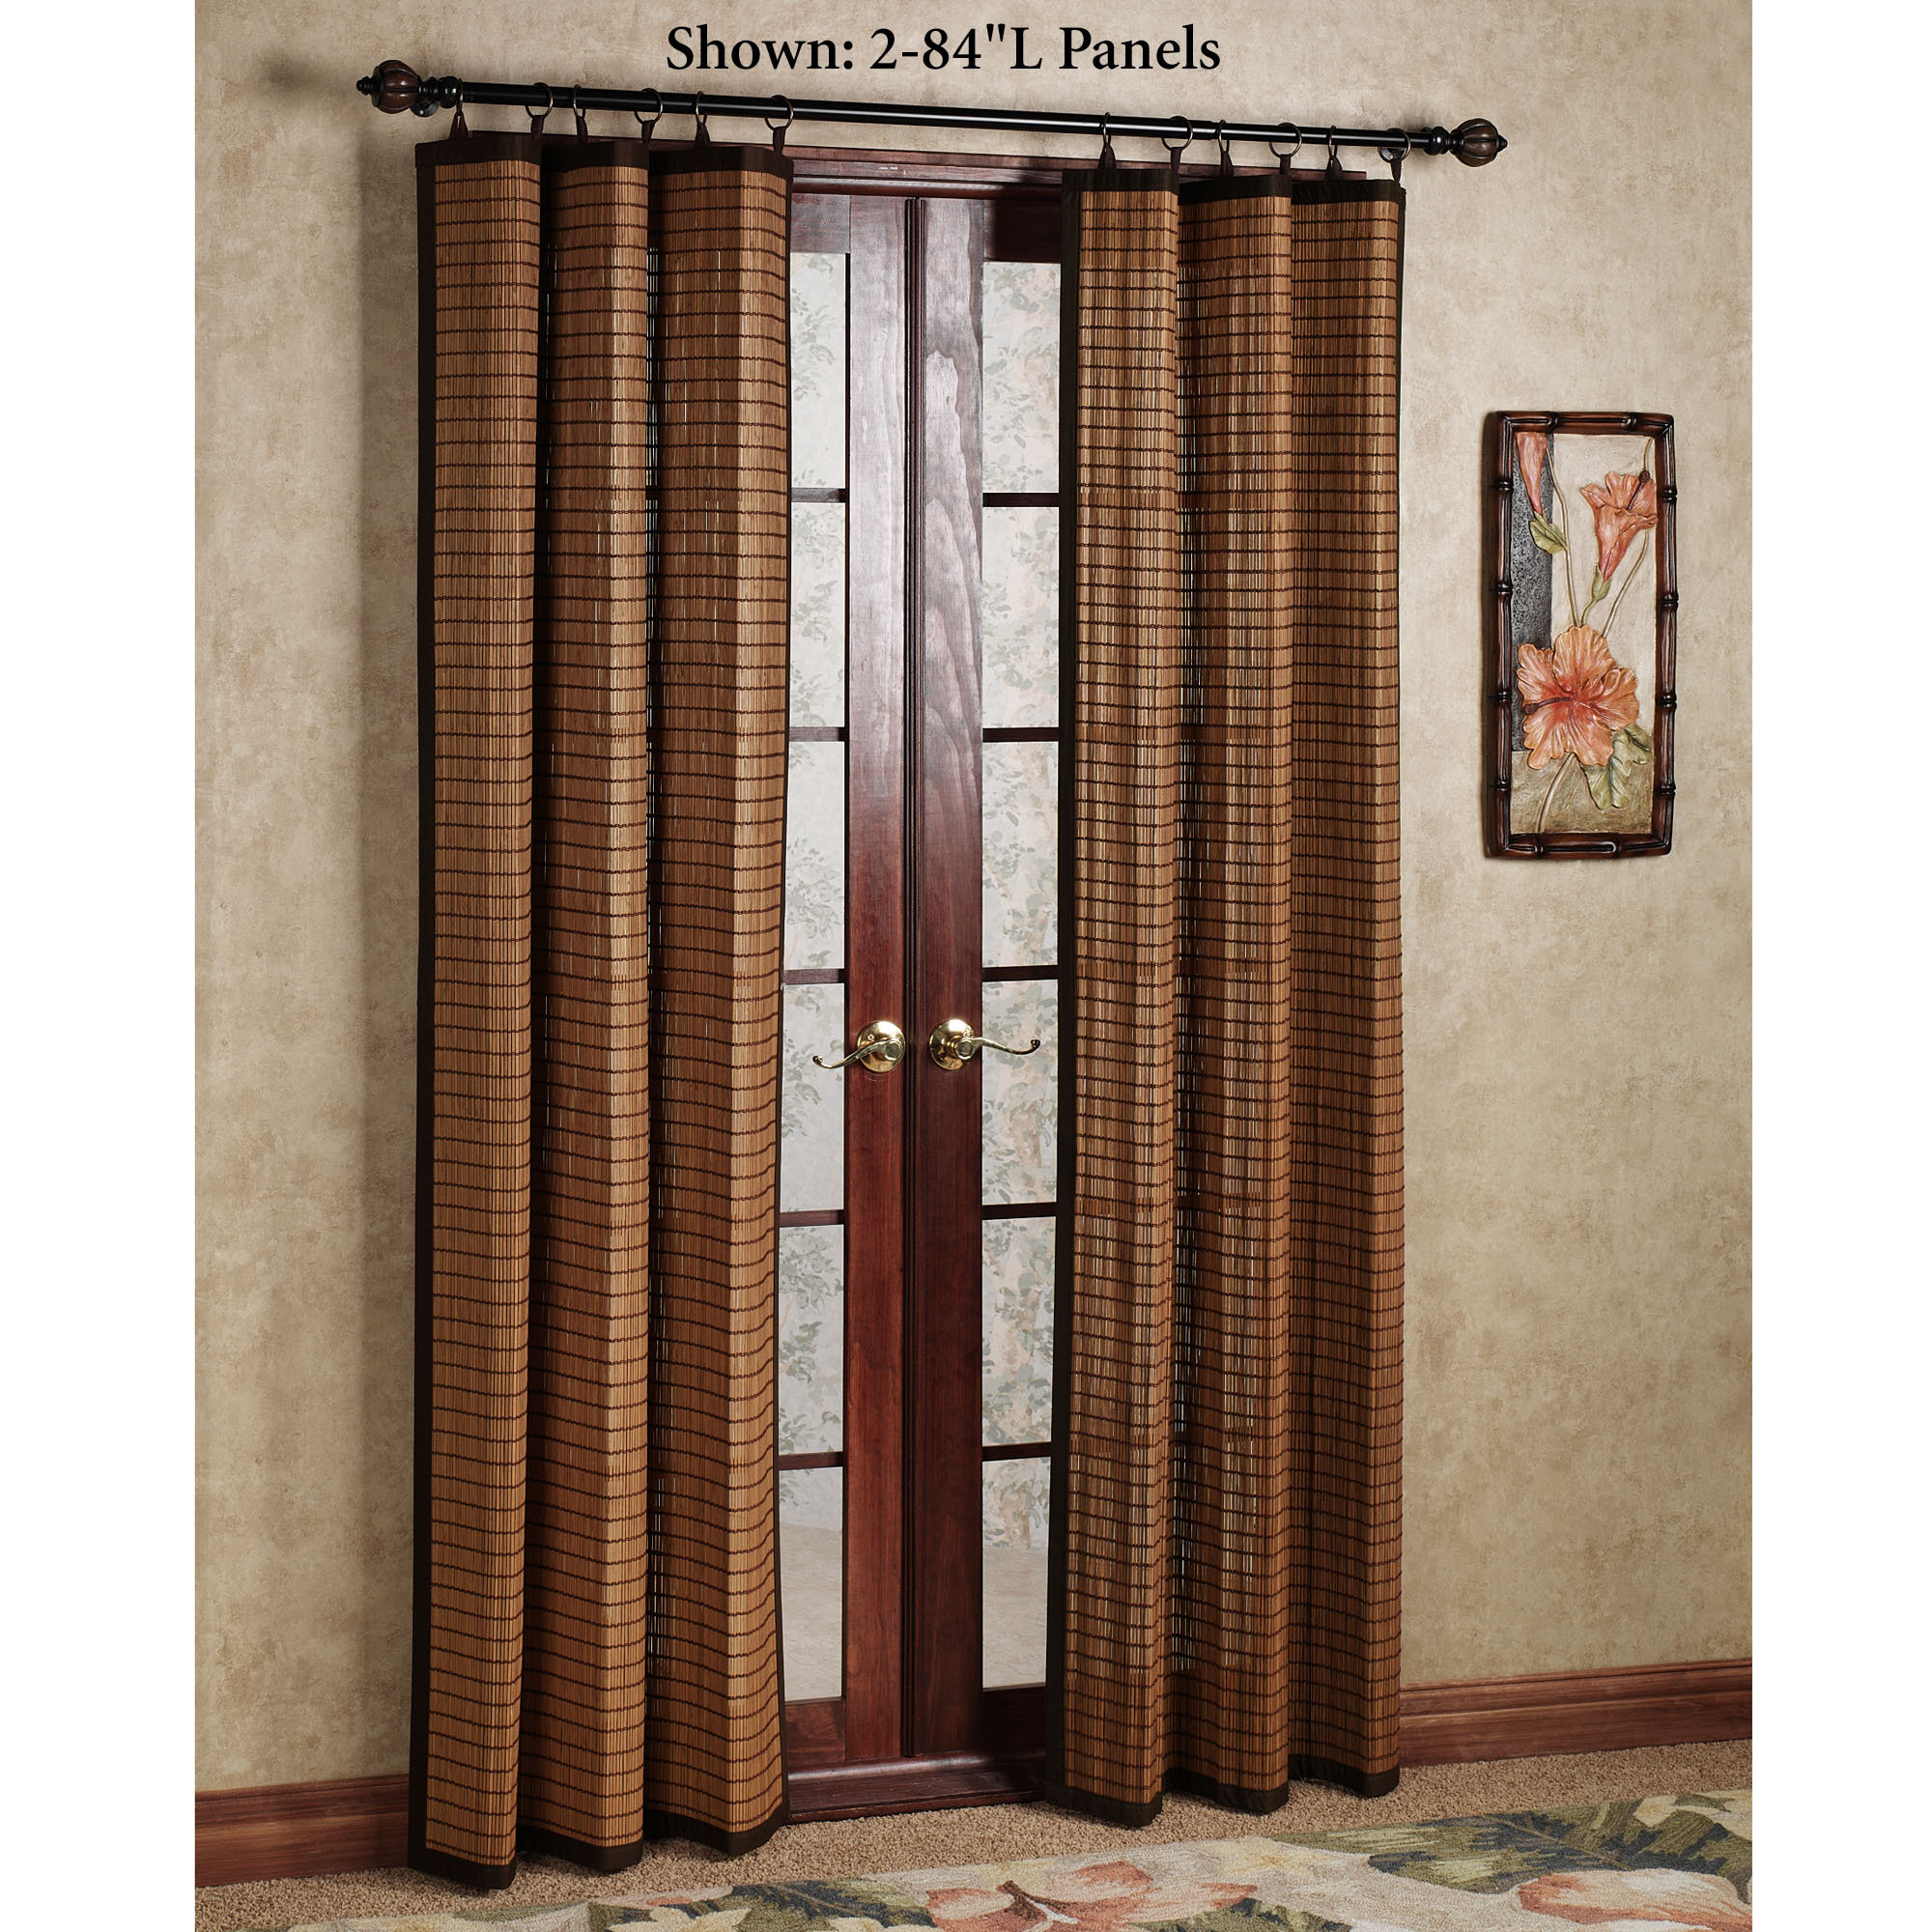 Door Panel Curtains : Curtains for doorways ideas homesfeed